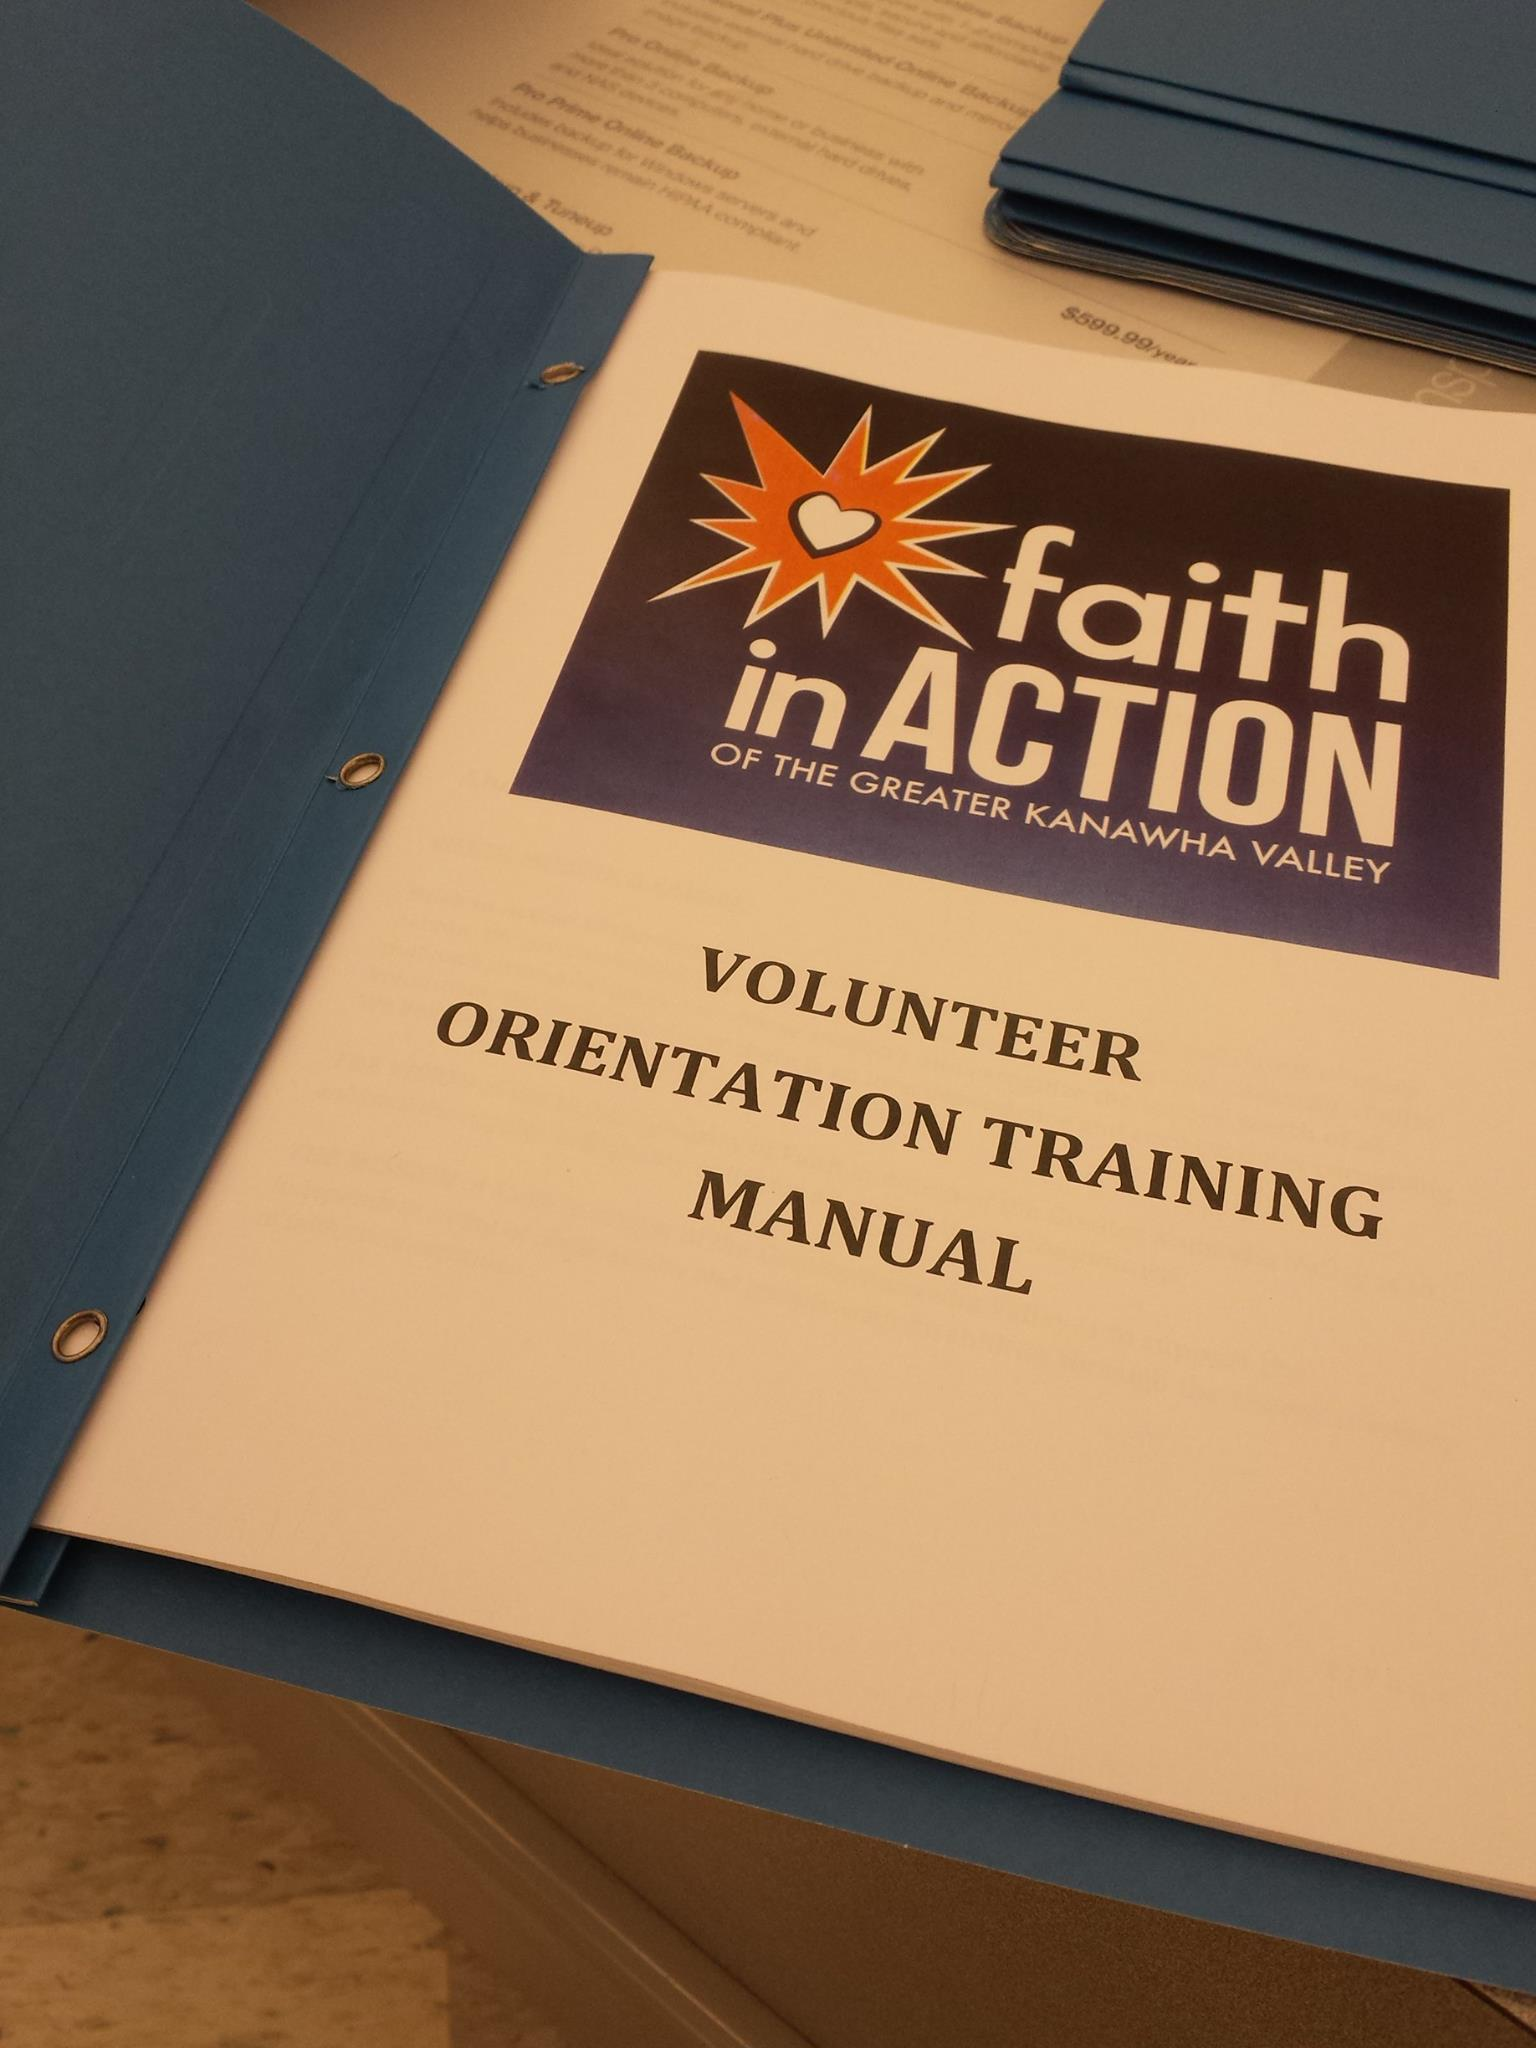 Volunteer Orientation Training